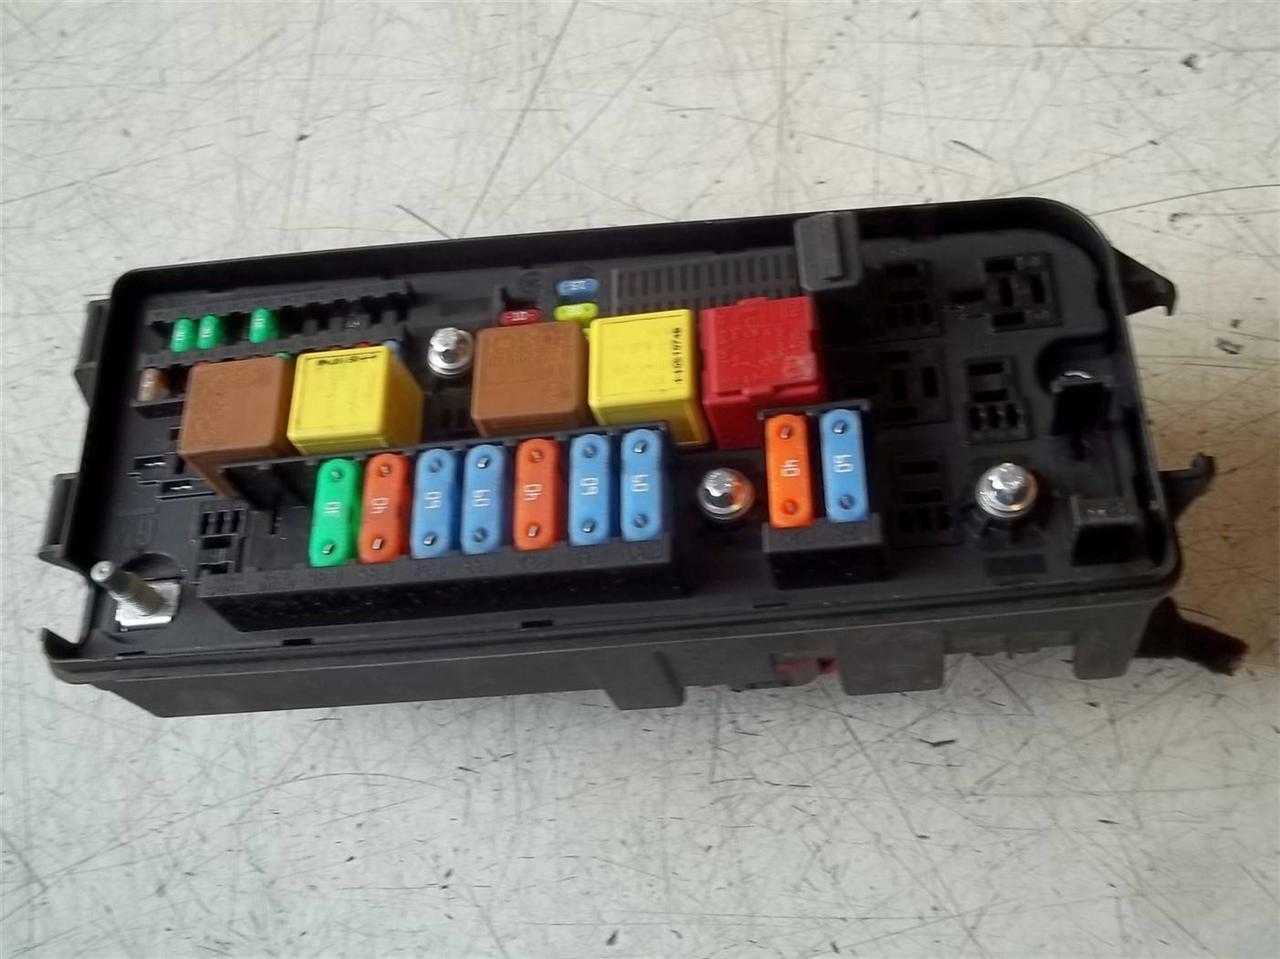 2005 Vauxhall Vectra C Hatchback Sxi 18 16v Fuse Box 13187505 Astra X Reg 1 Of 1only Available